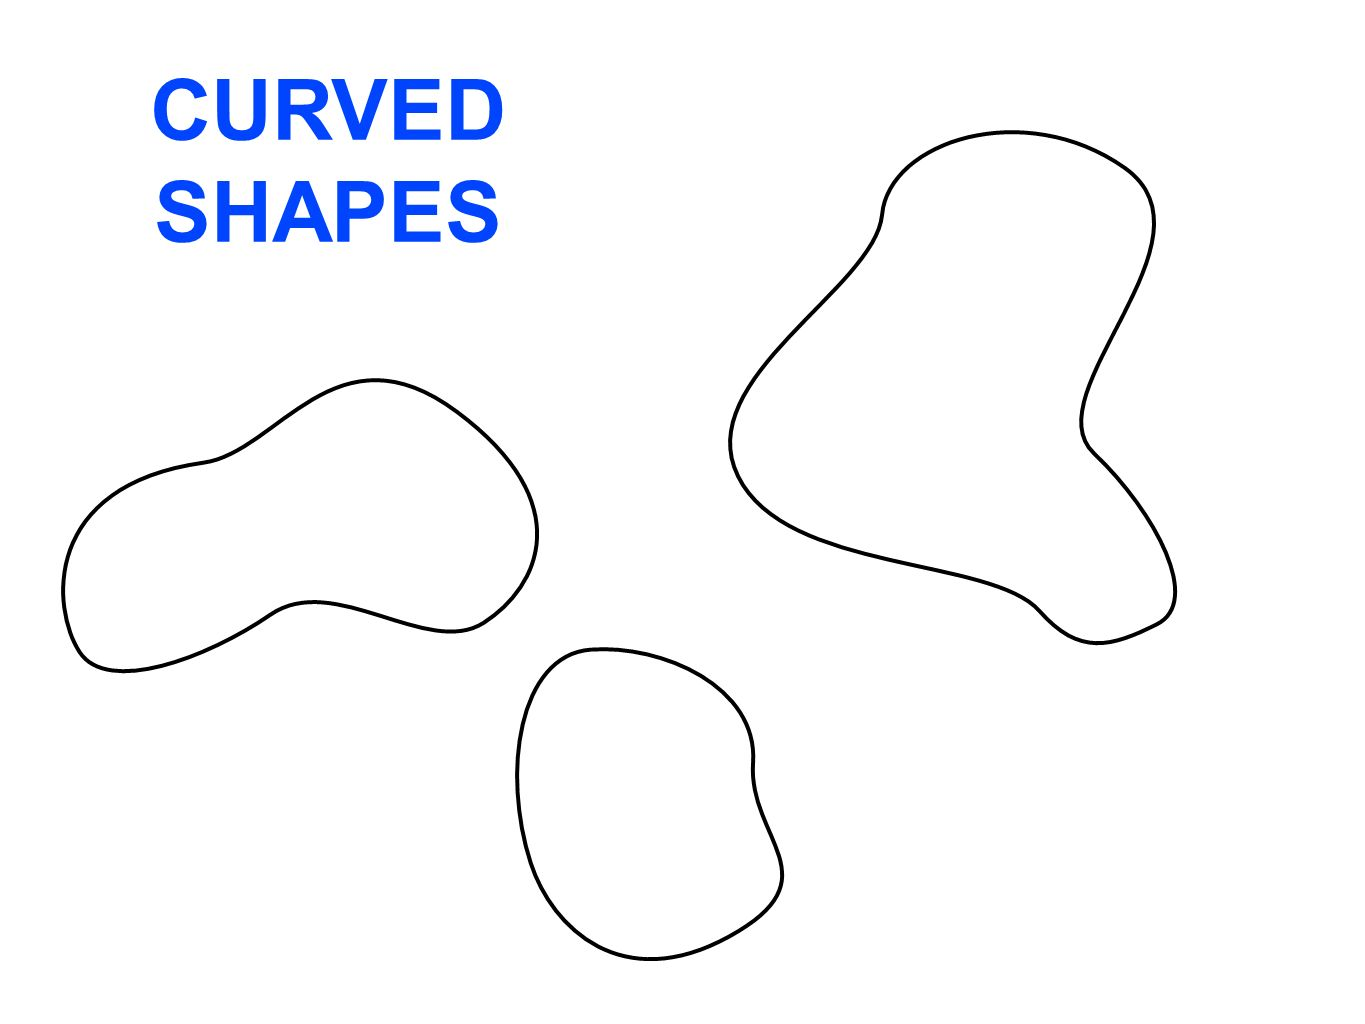 how to create curved shapes in photoshop